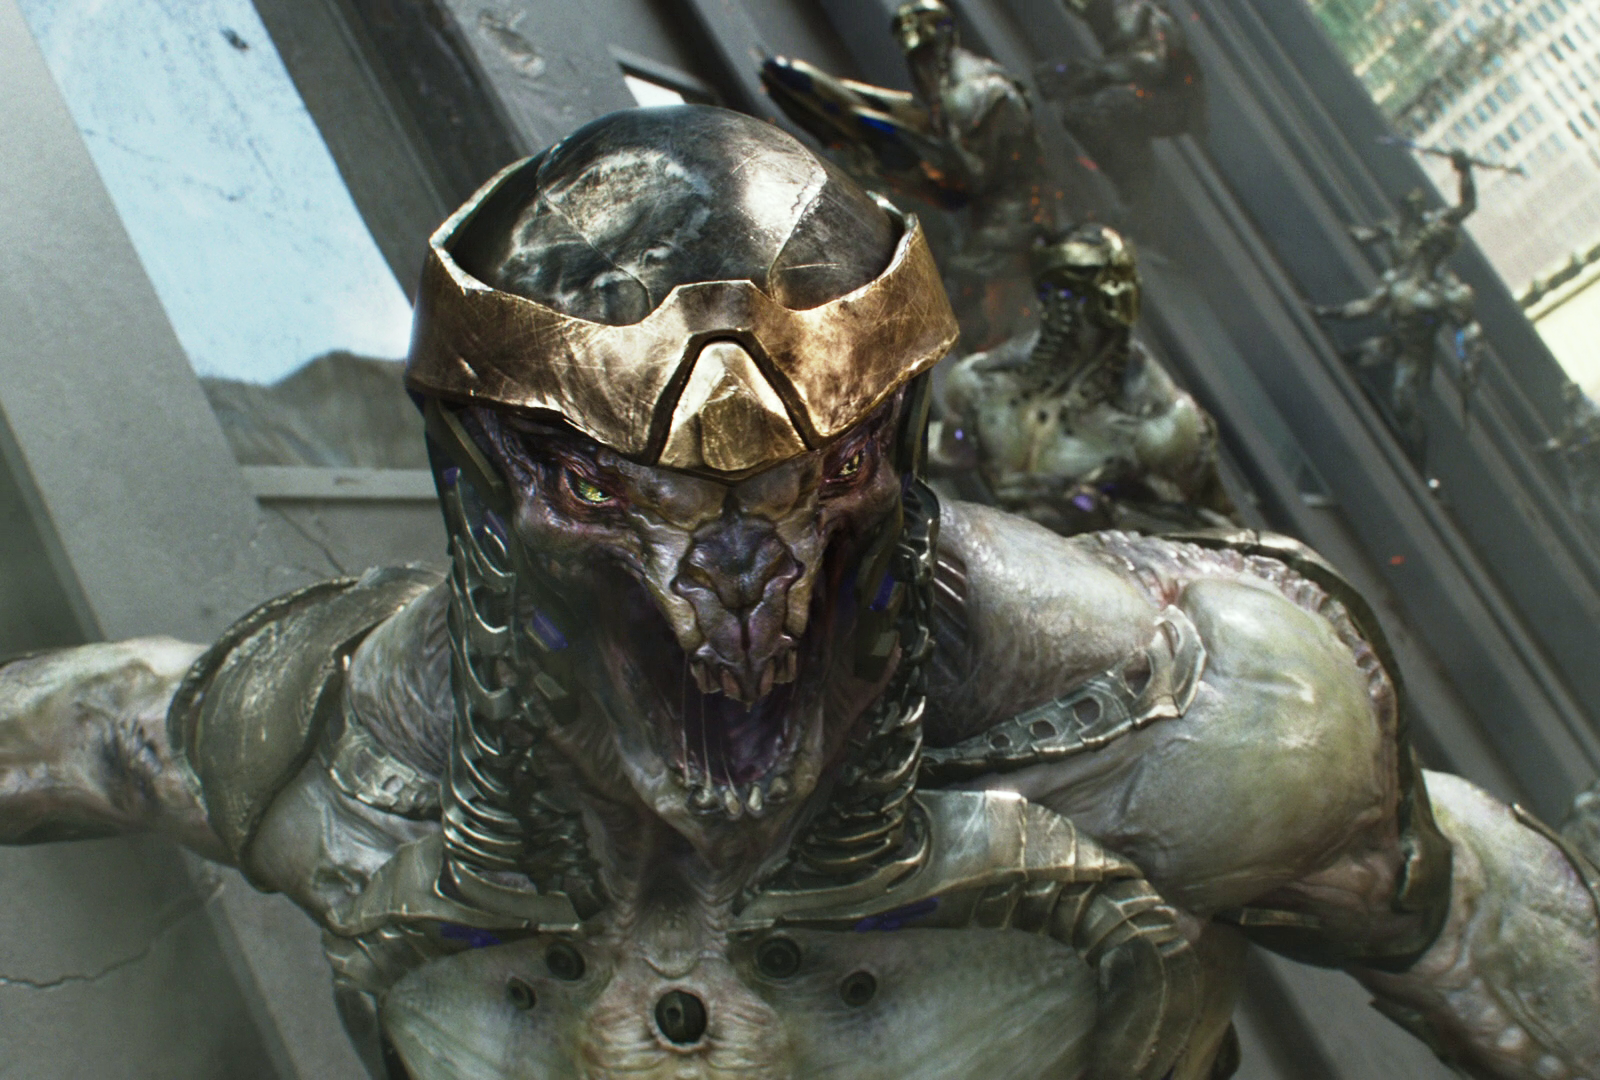 http://vignette4.wikia.nocookie.net/marvelmovies/images/6/67/Chitauri-Avengers.png/revision/latest?cb=20131122025410